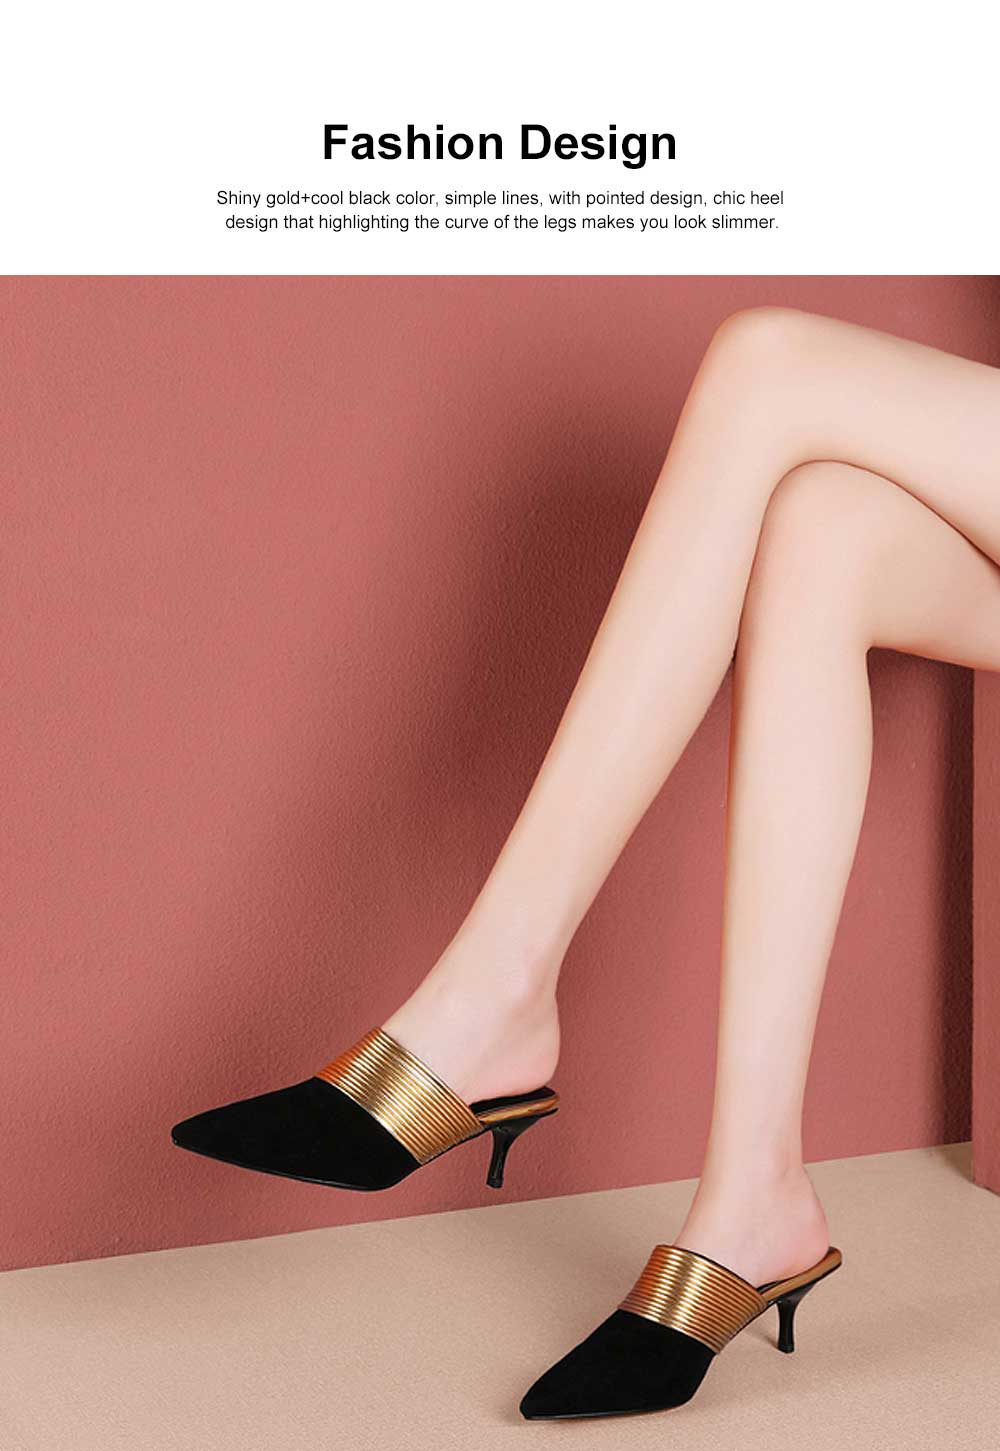 Women's Mid-heel Half Warped Shoes, Comfortable Pointed Toe Casual Shoe, Fashion Pure Color Slim Heel Stiletto Heels 1